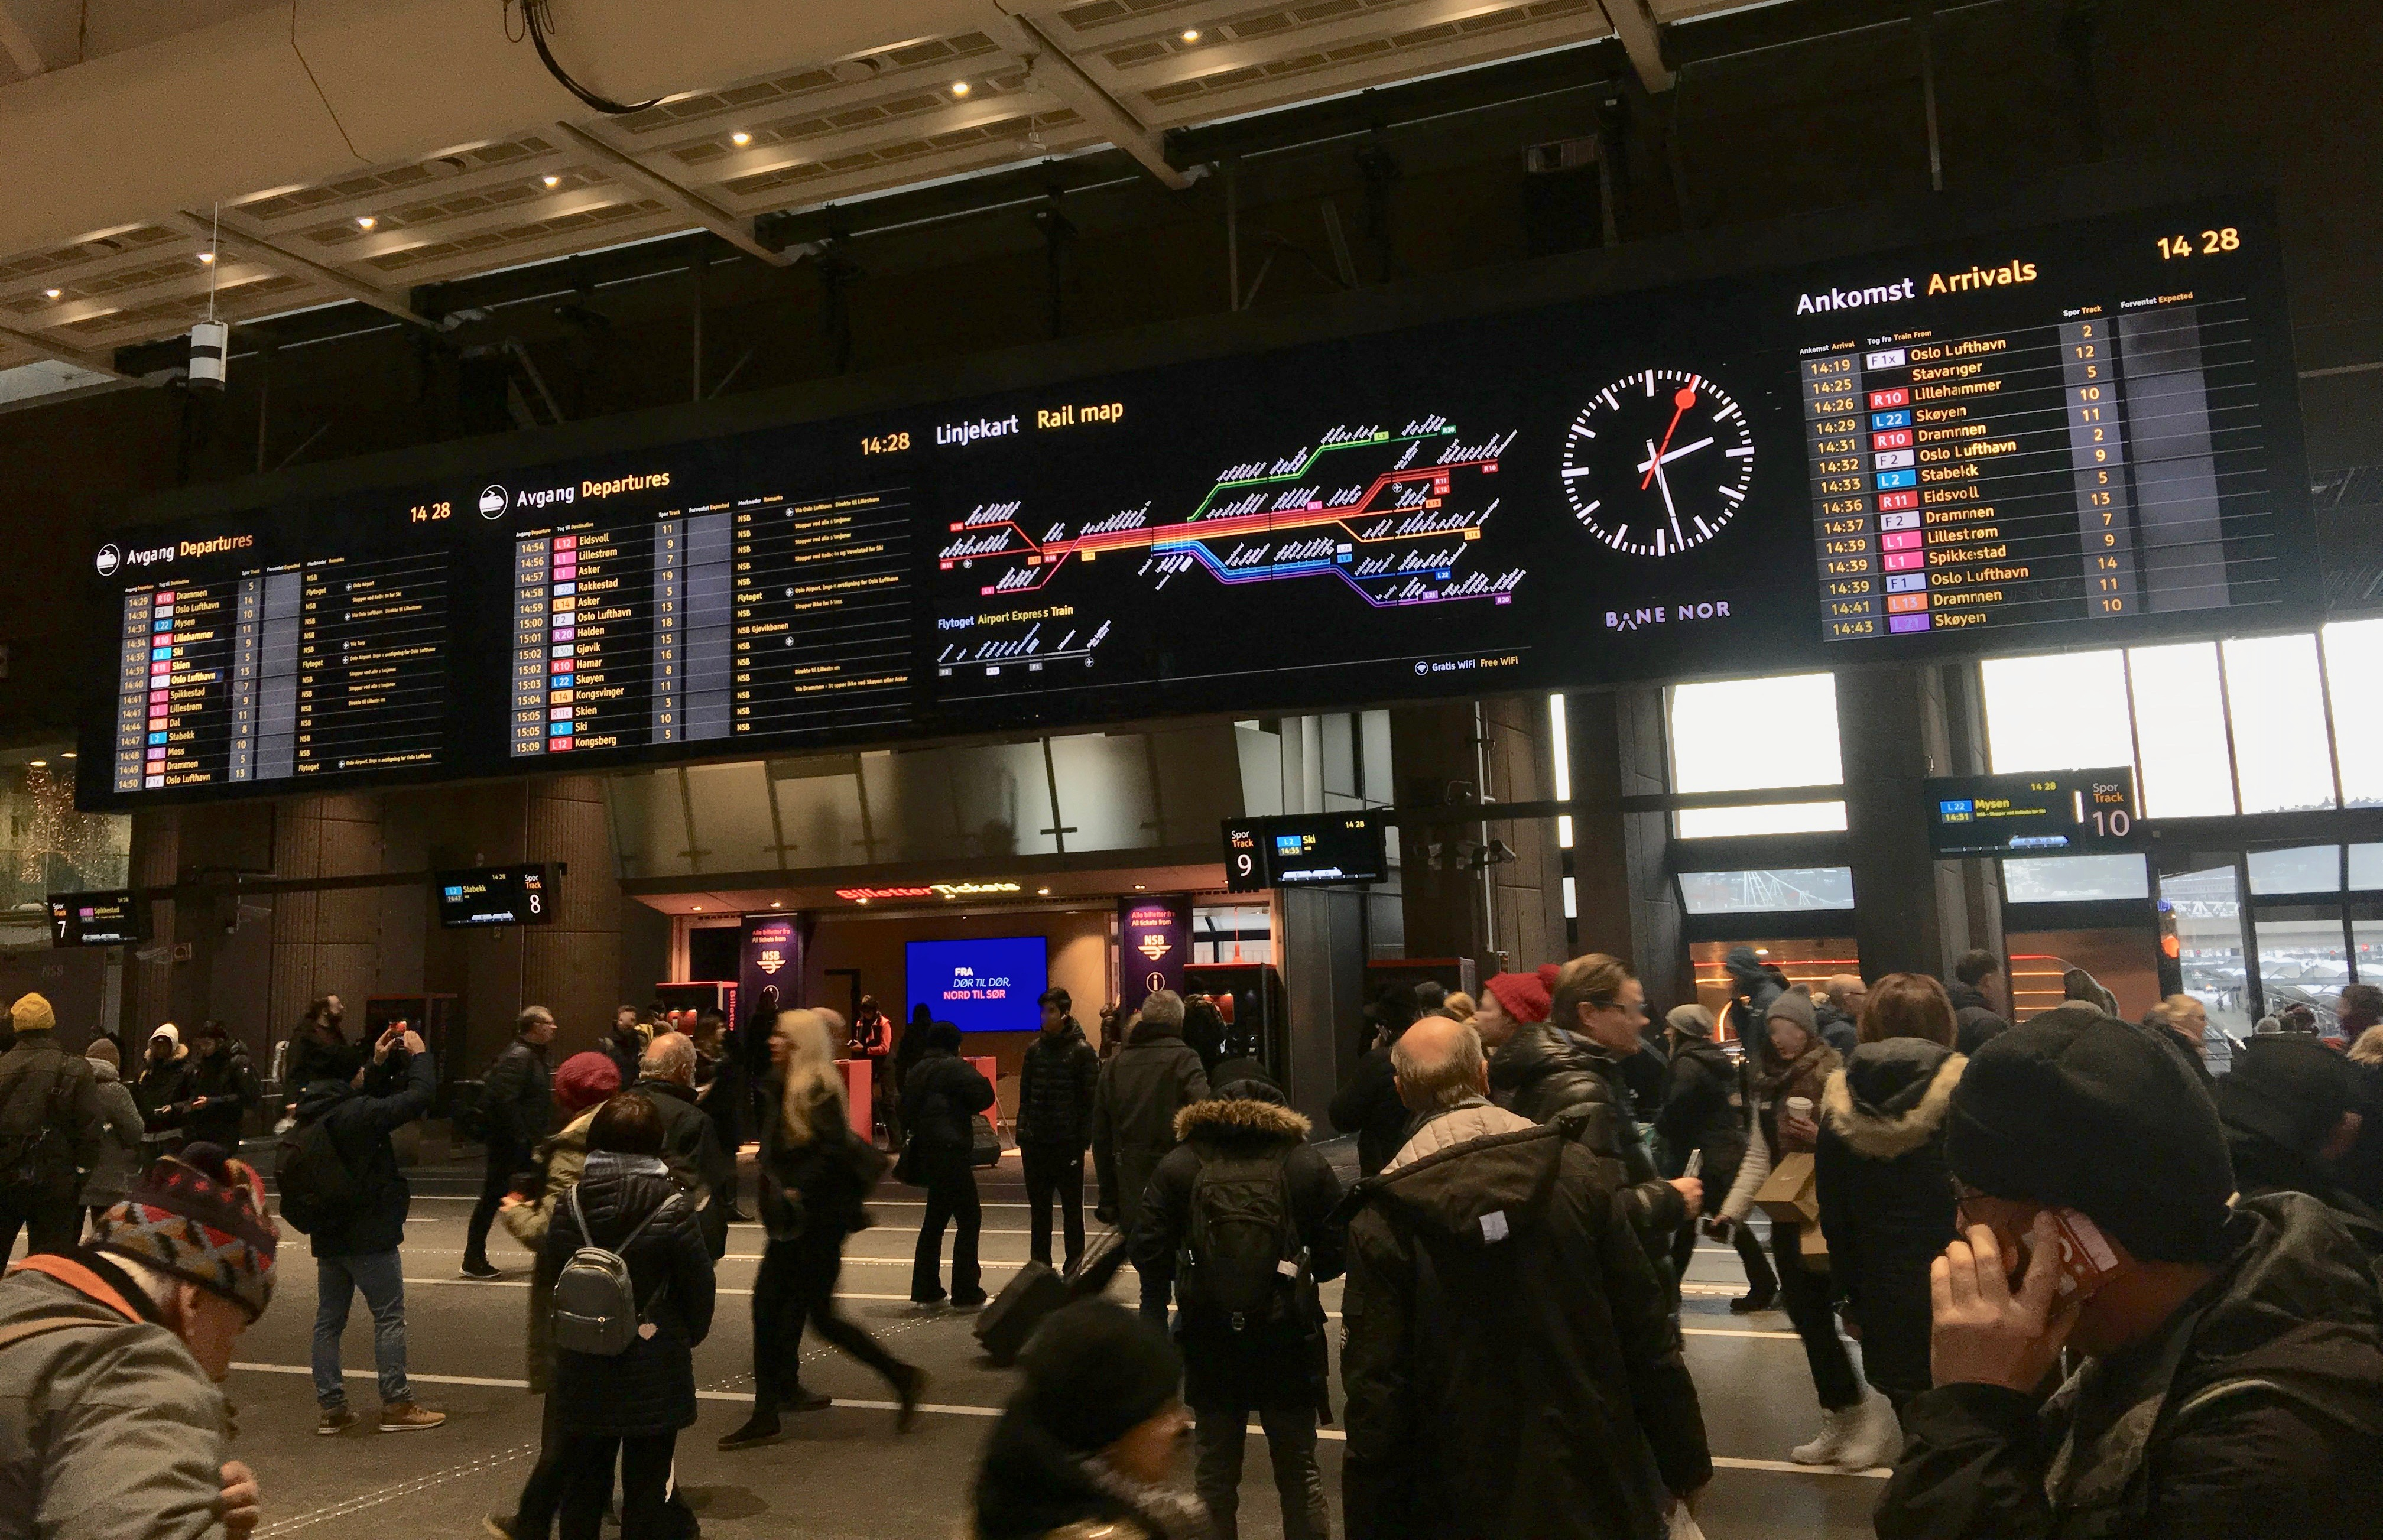 File Electronic Board Rail Map And Time Table With Arrivals